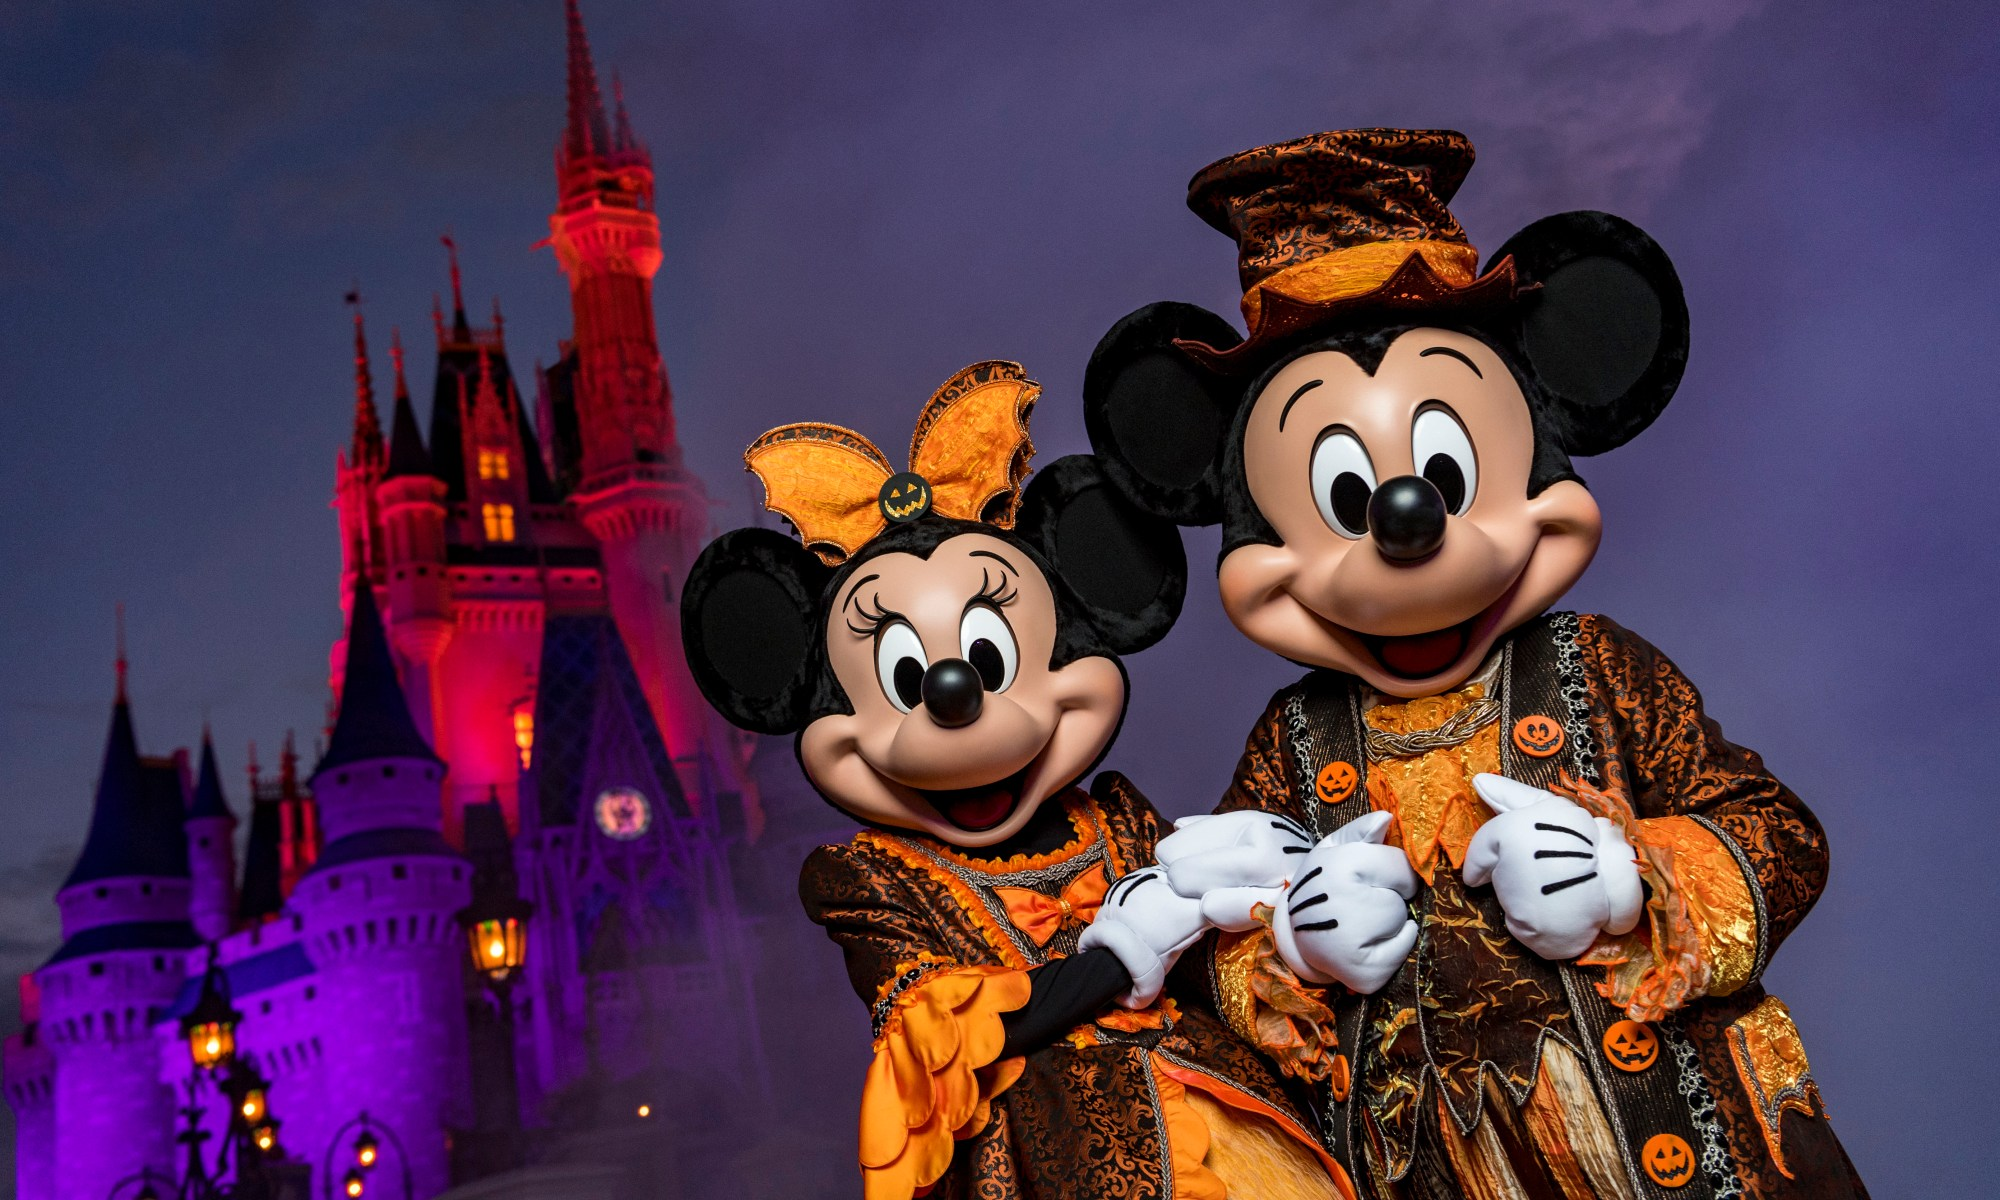 Photo of Minnie and Mickey at Mickey's Not-So-Scary Halloween Party